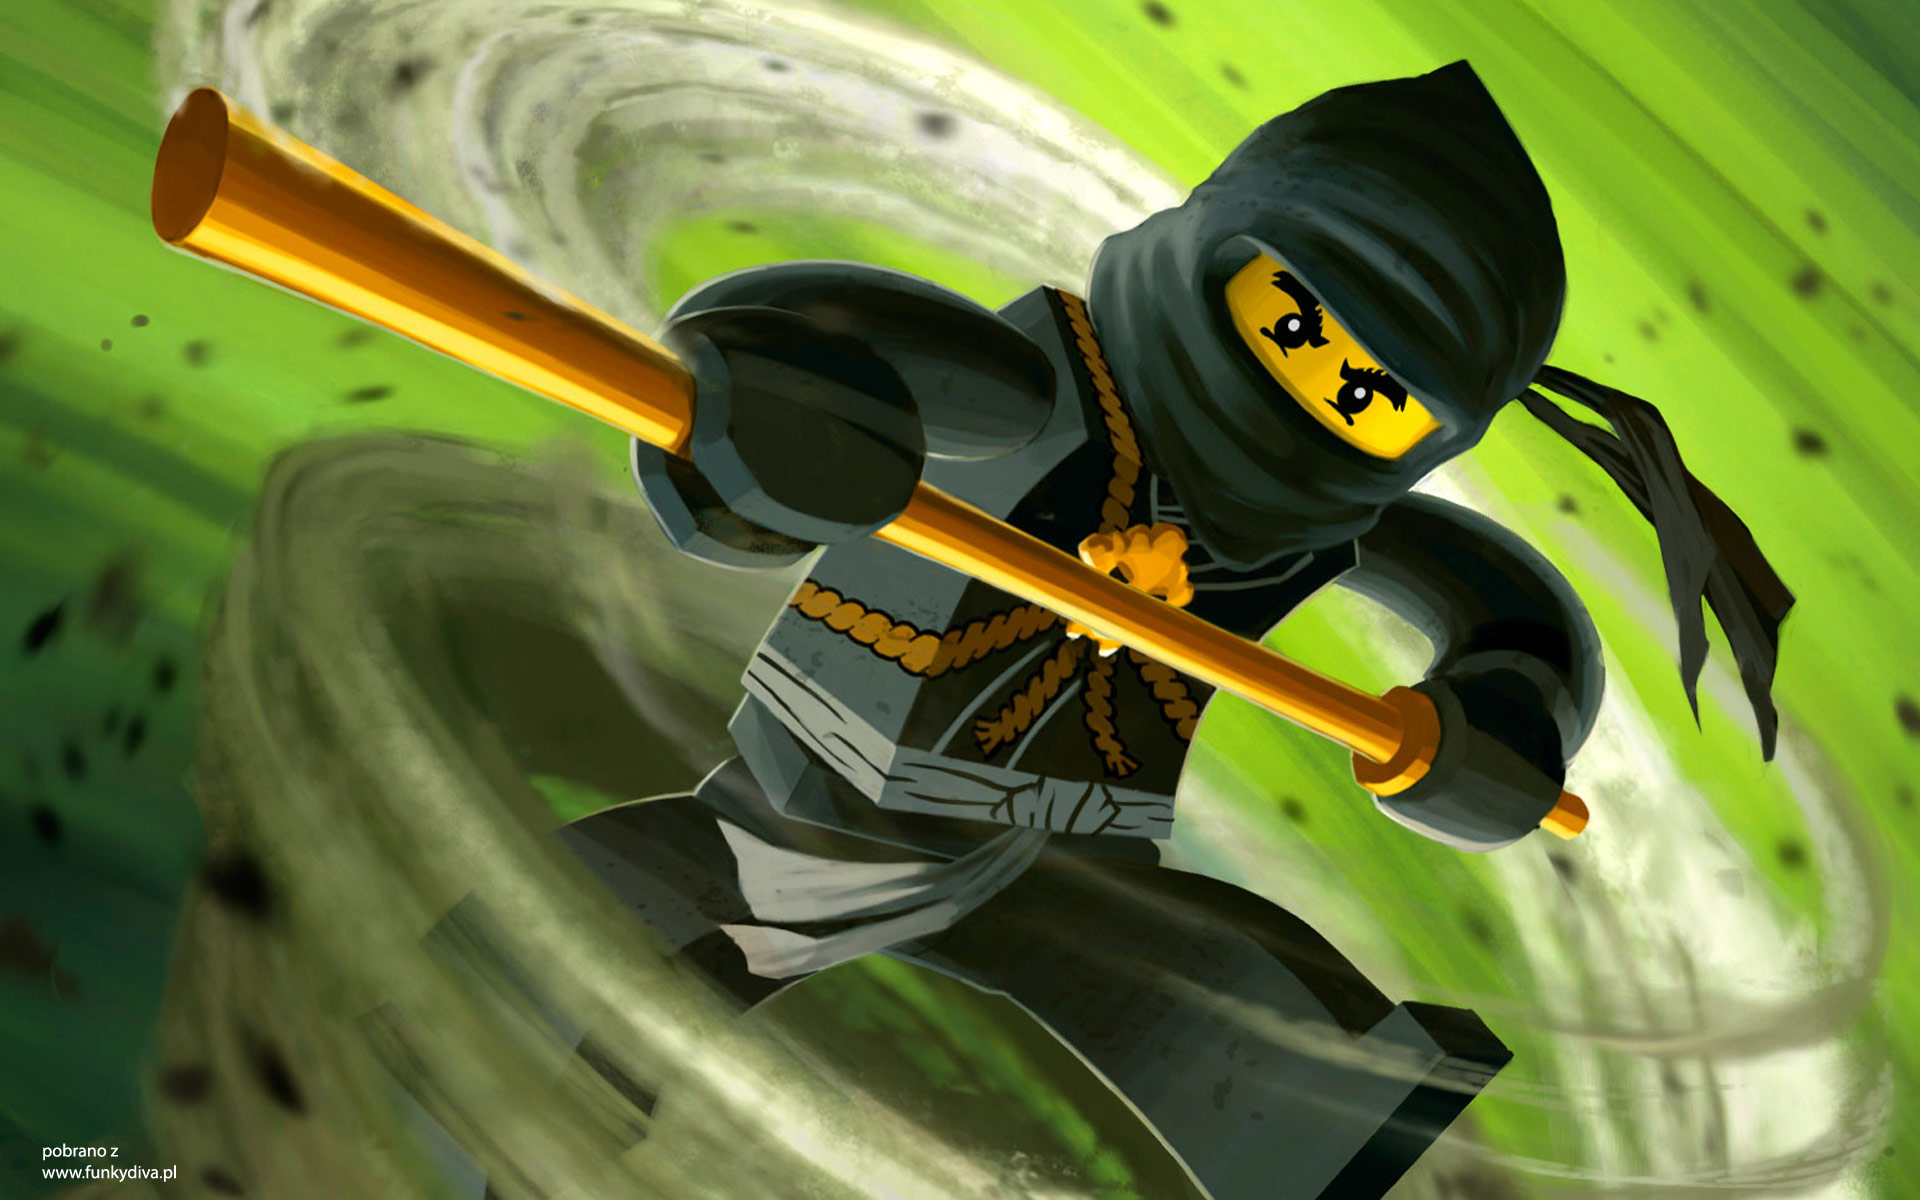 The LEGO Ninjago Movie It's strength lies within the earthiness and a sense of amusement towards the outer reality; that a regular LEGO movie consists, along with the runtime which helps the movie flow but it still doesn't make it a smart movie with anything new to offer except for some relationship drama; which frankly the audience is familiar with.